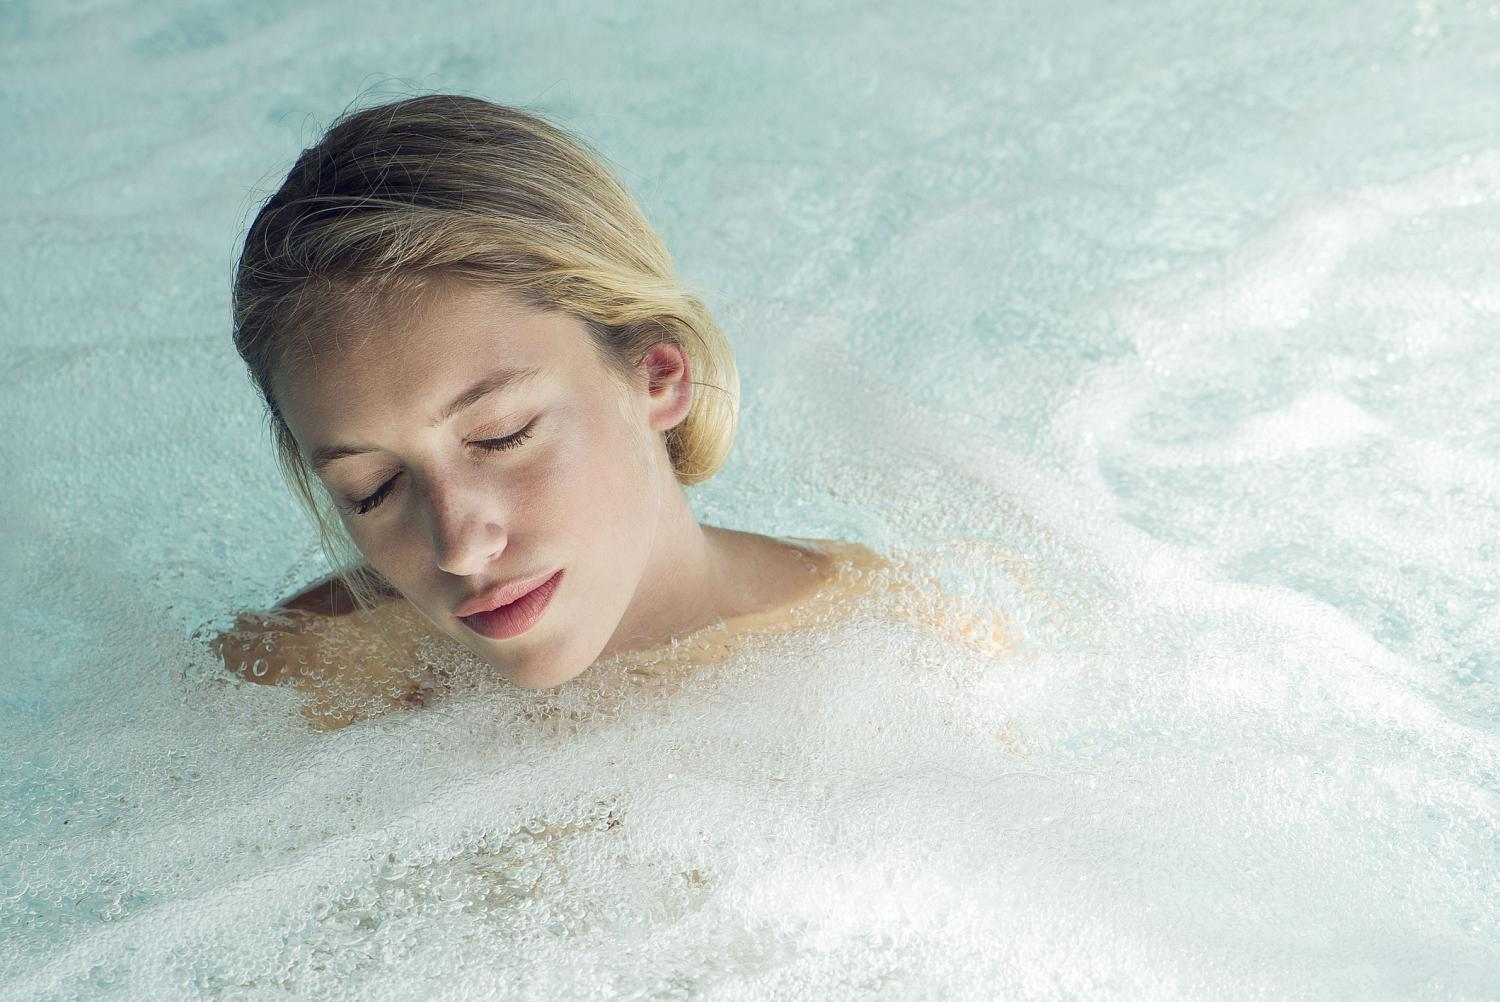 5 ways a hot tub can improve your mental wellbeing